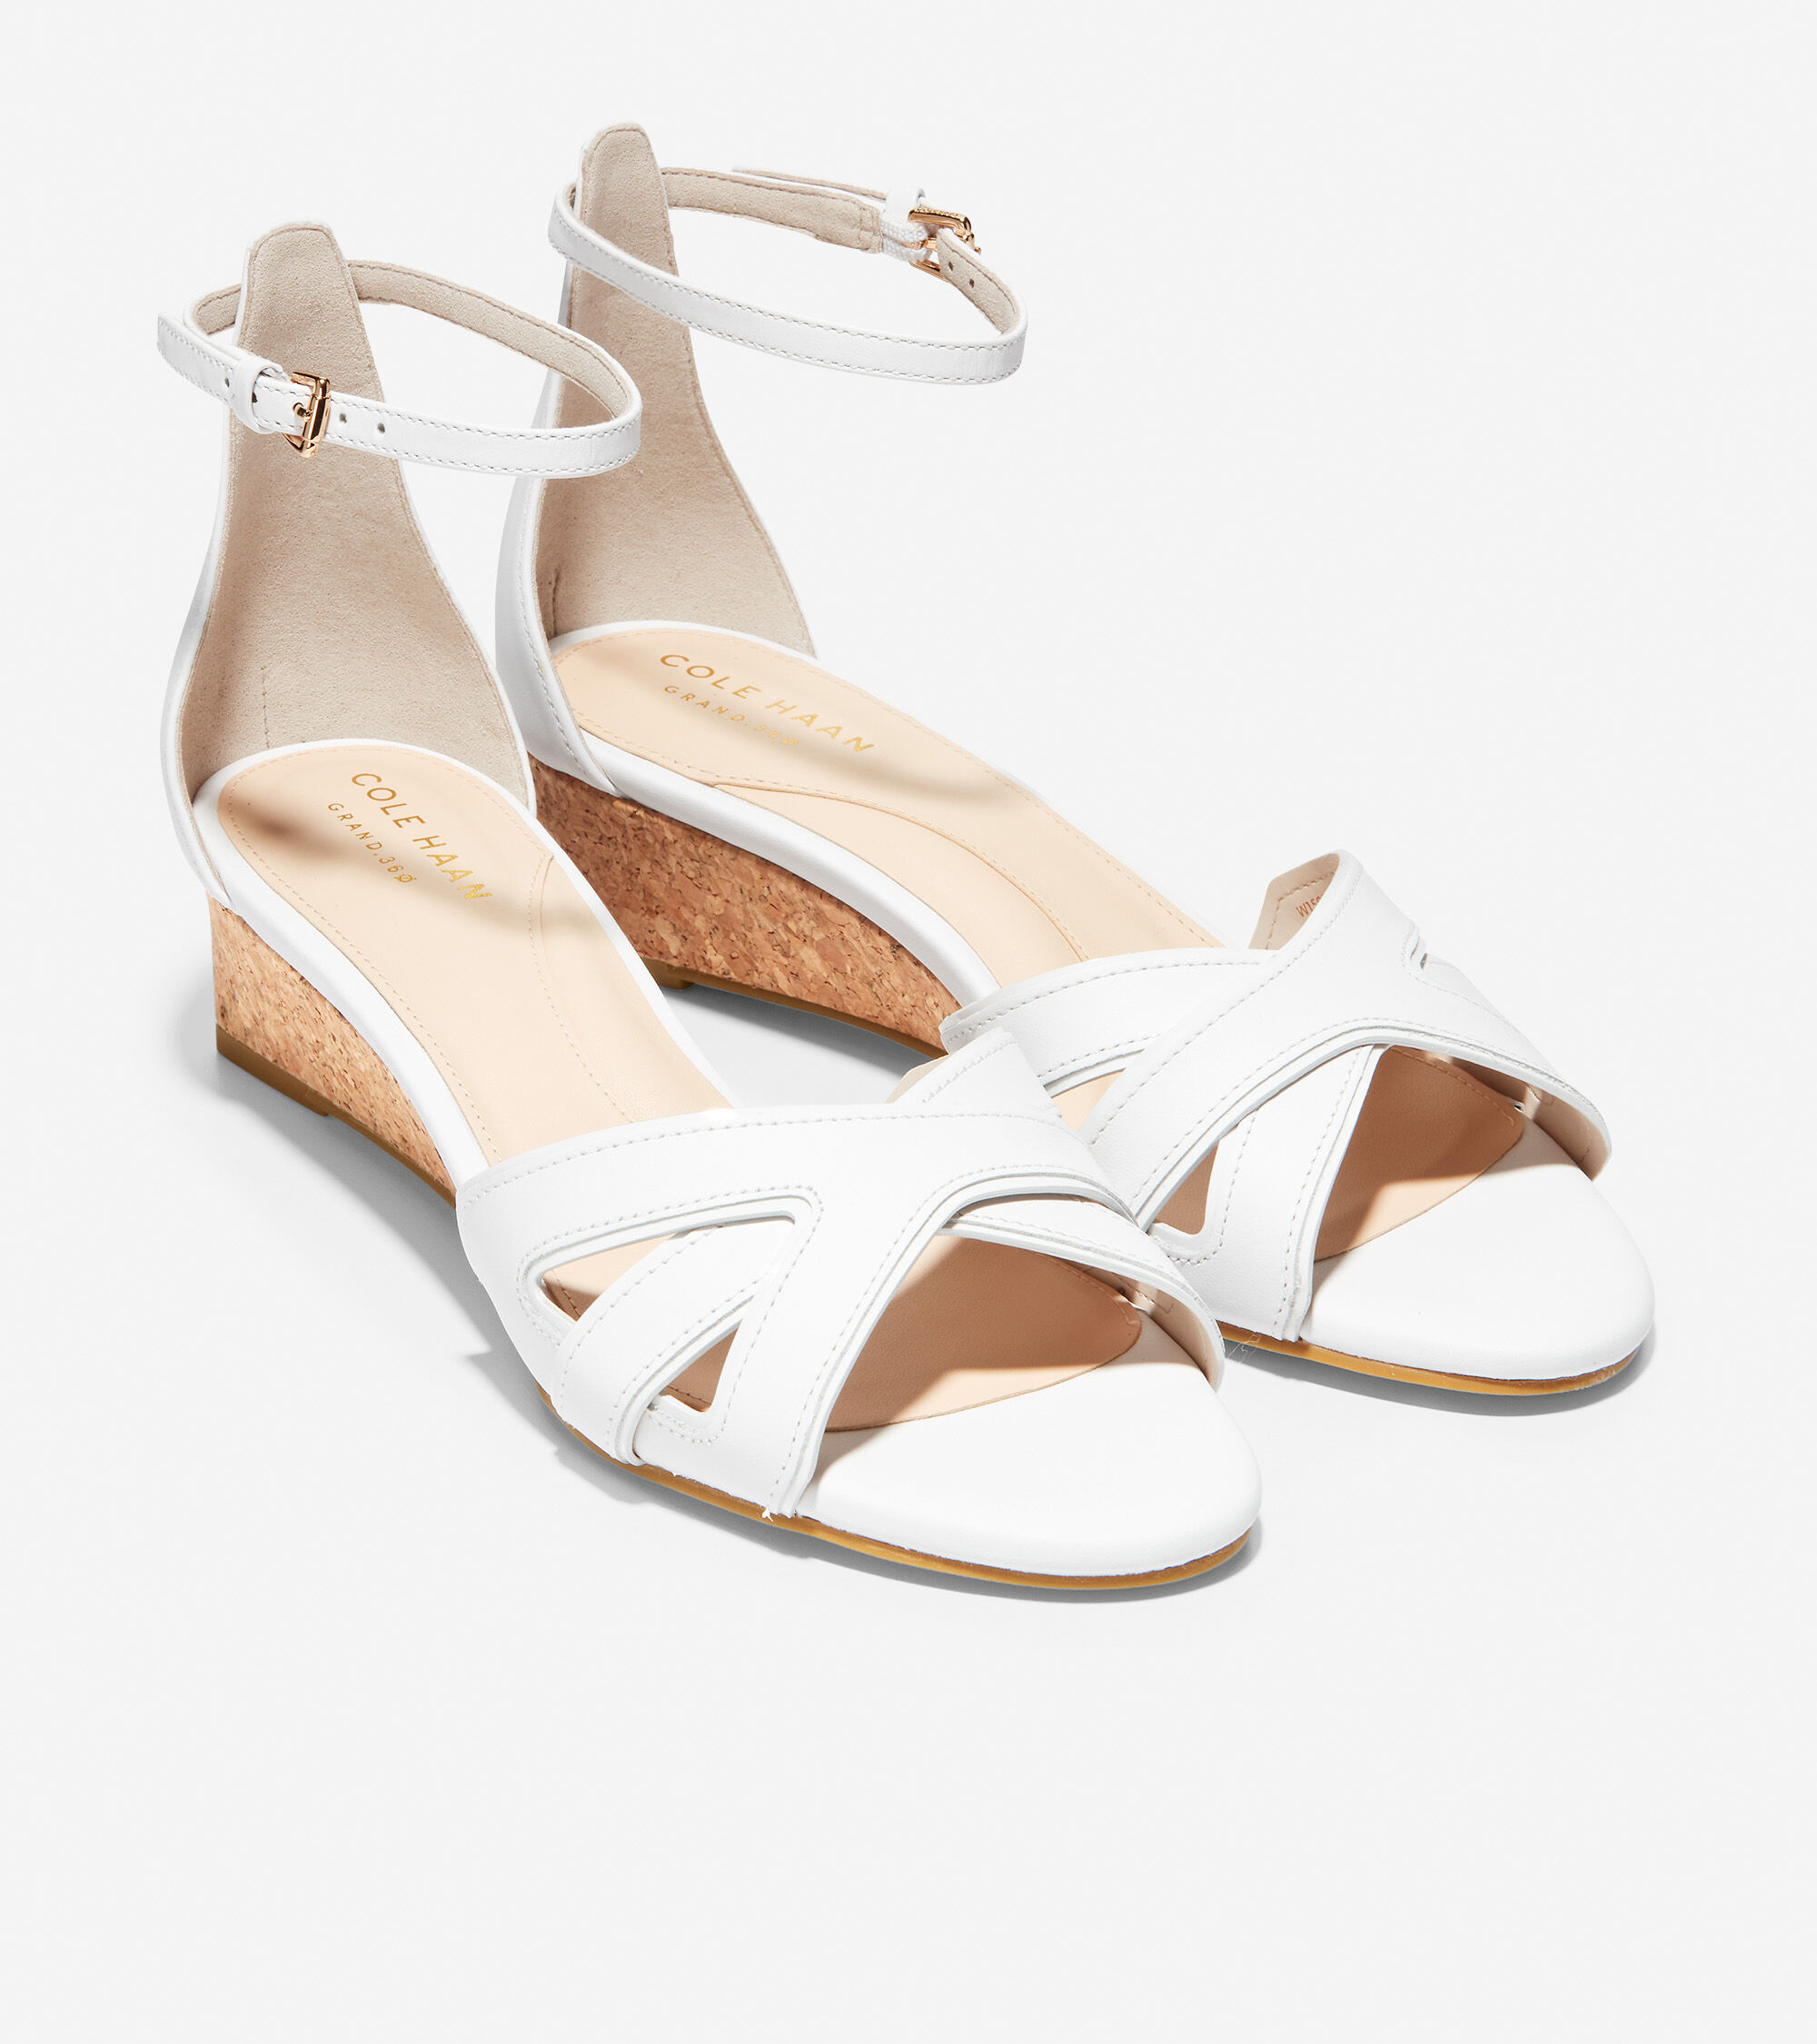 a37a2554a Cole Haan Hana Grand Wedge in Optic White Leather-Patent Cork ...